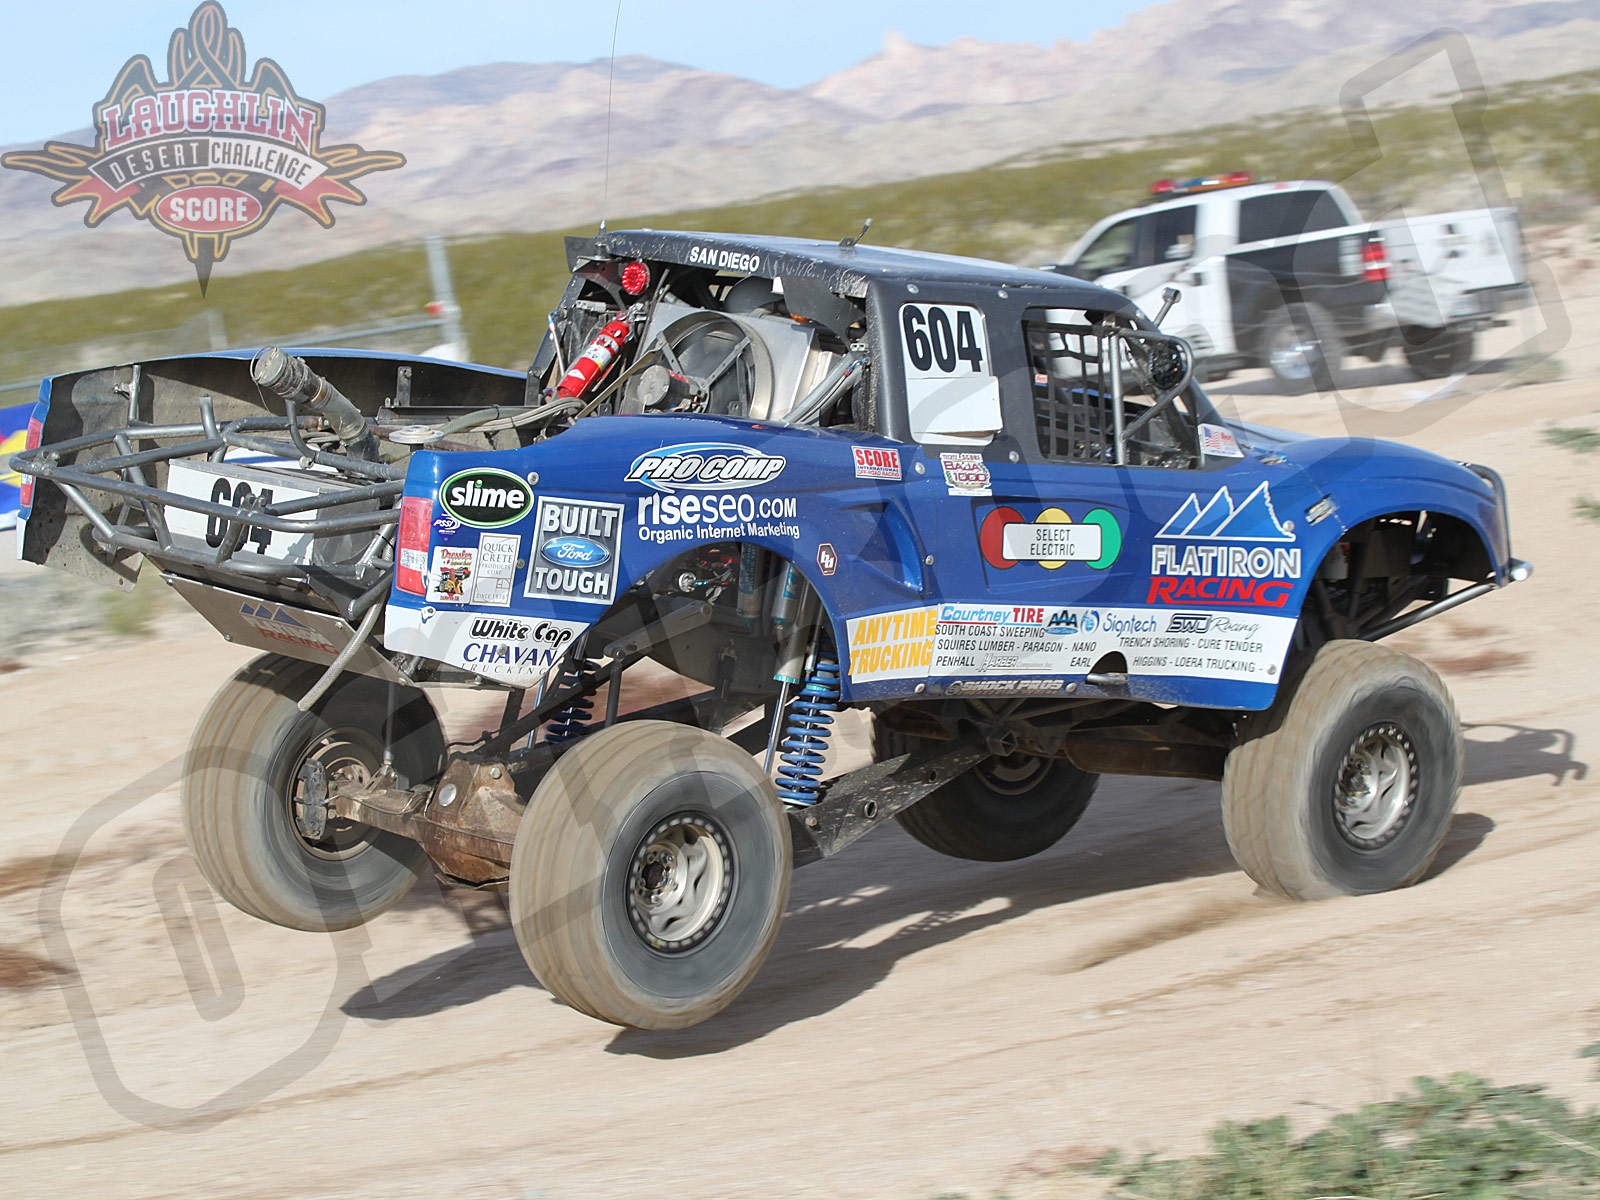 012011or 6567+2011 score laughlin desert challenge+truck classes